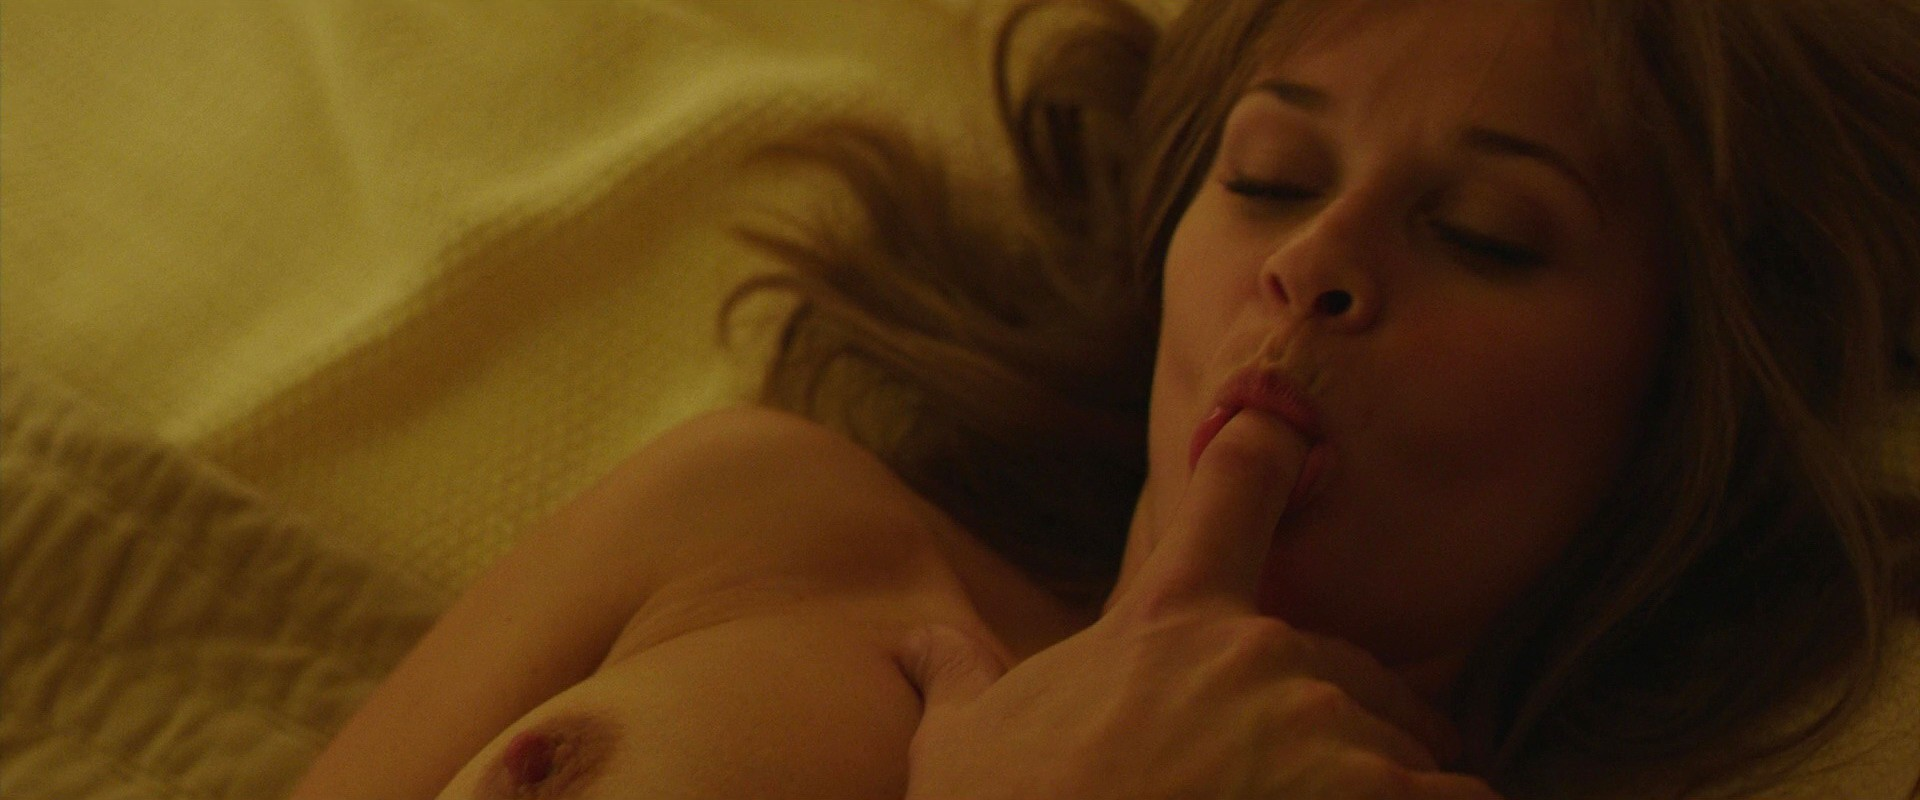 reese-witherspoon-nude-tits